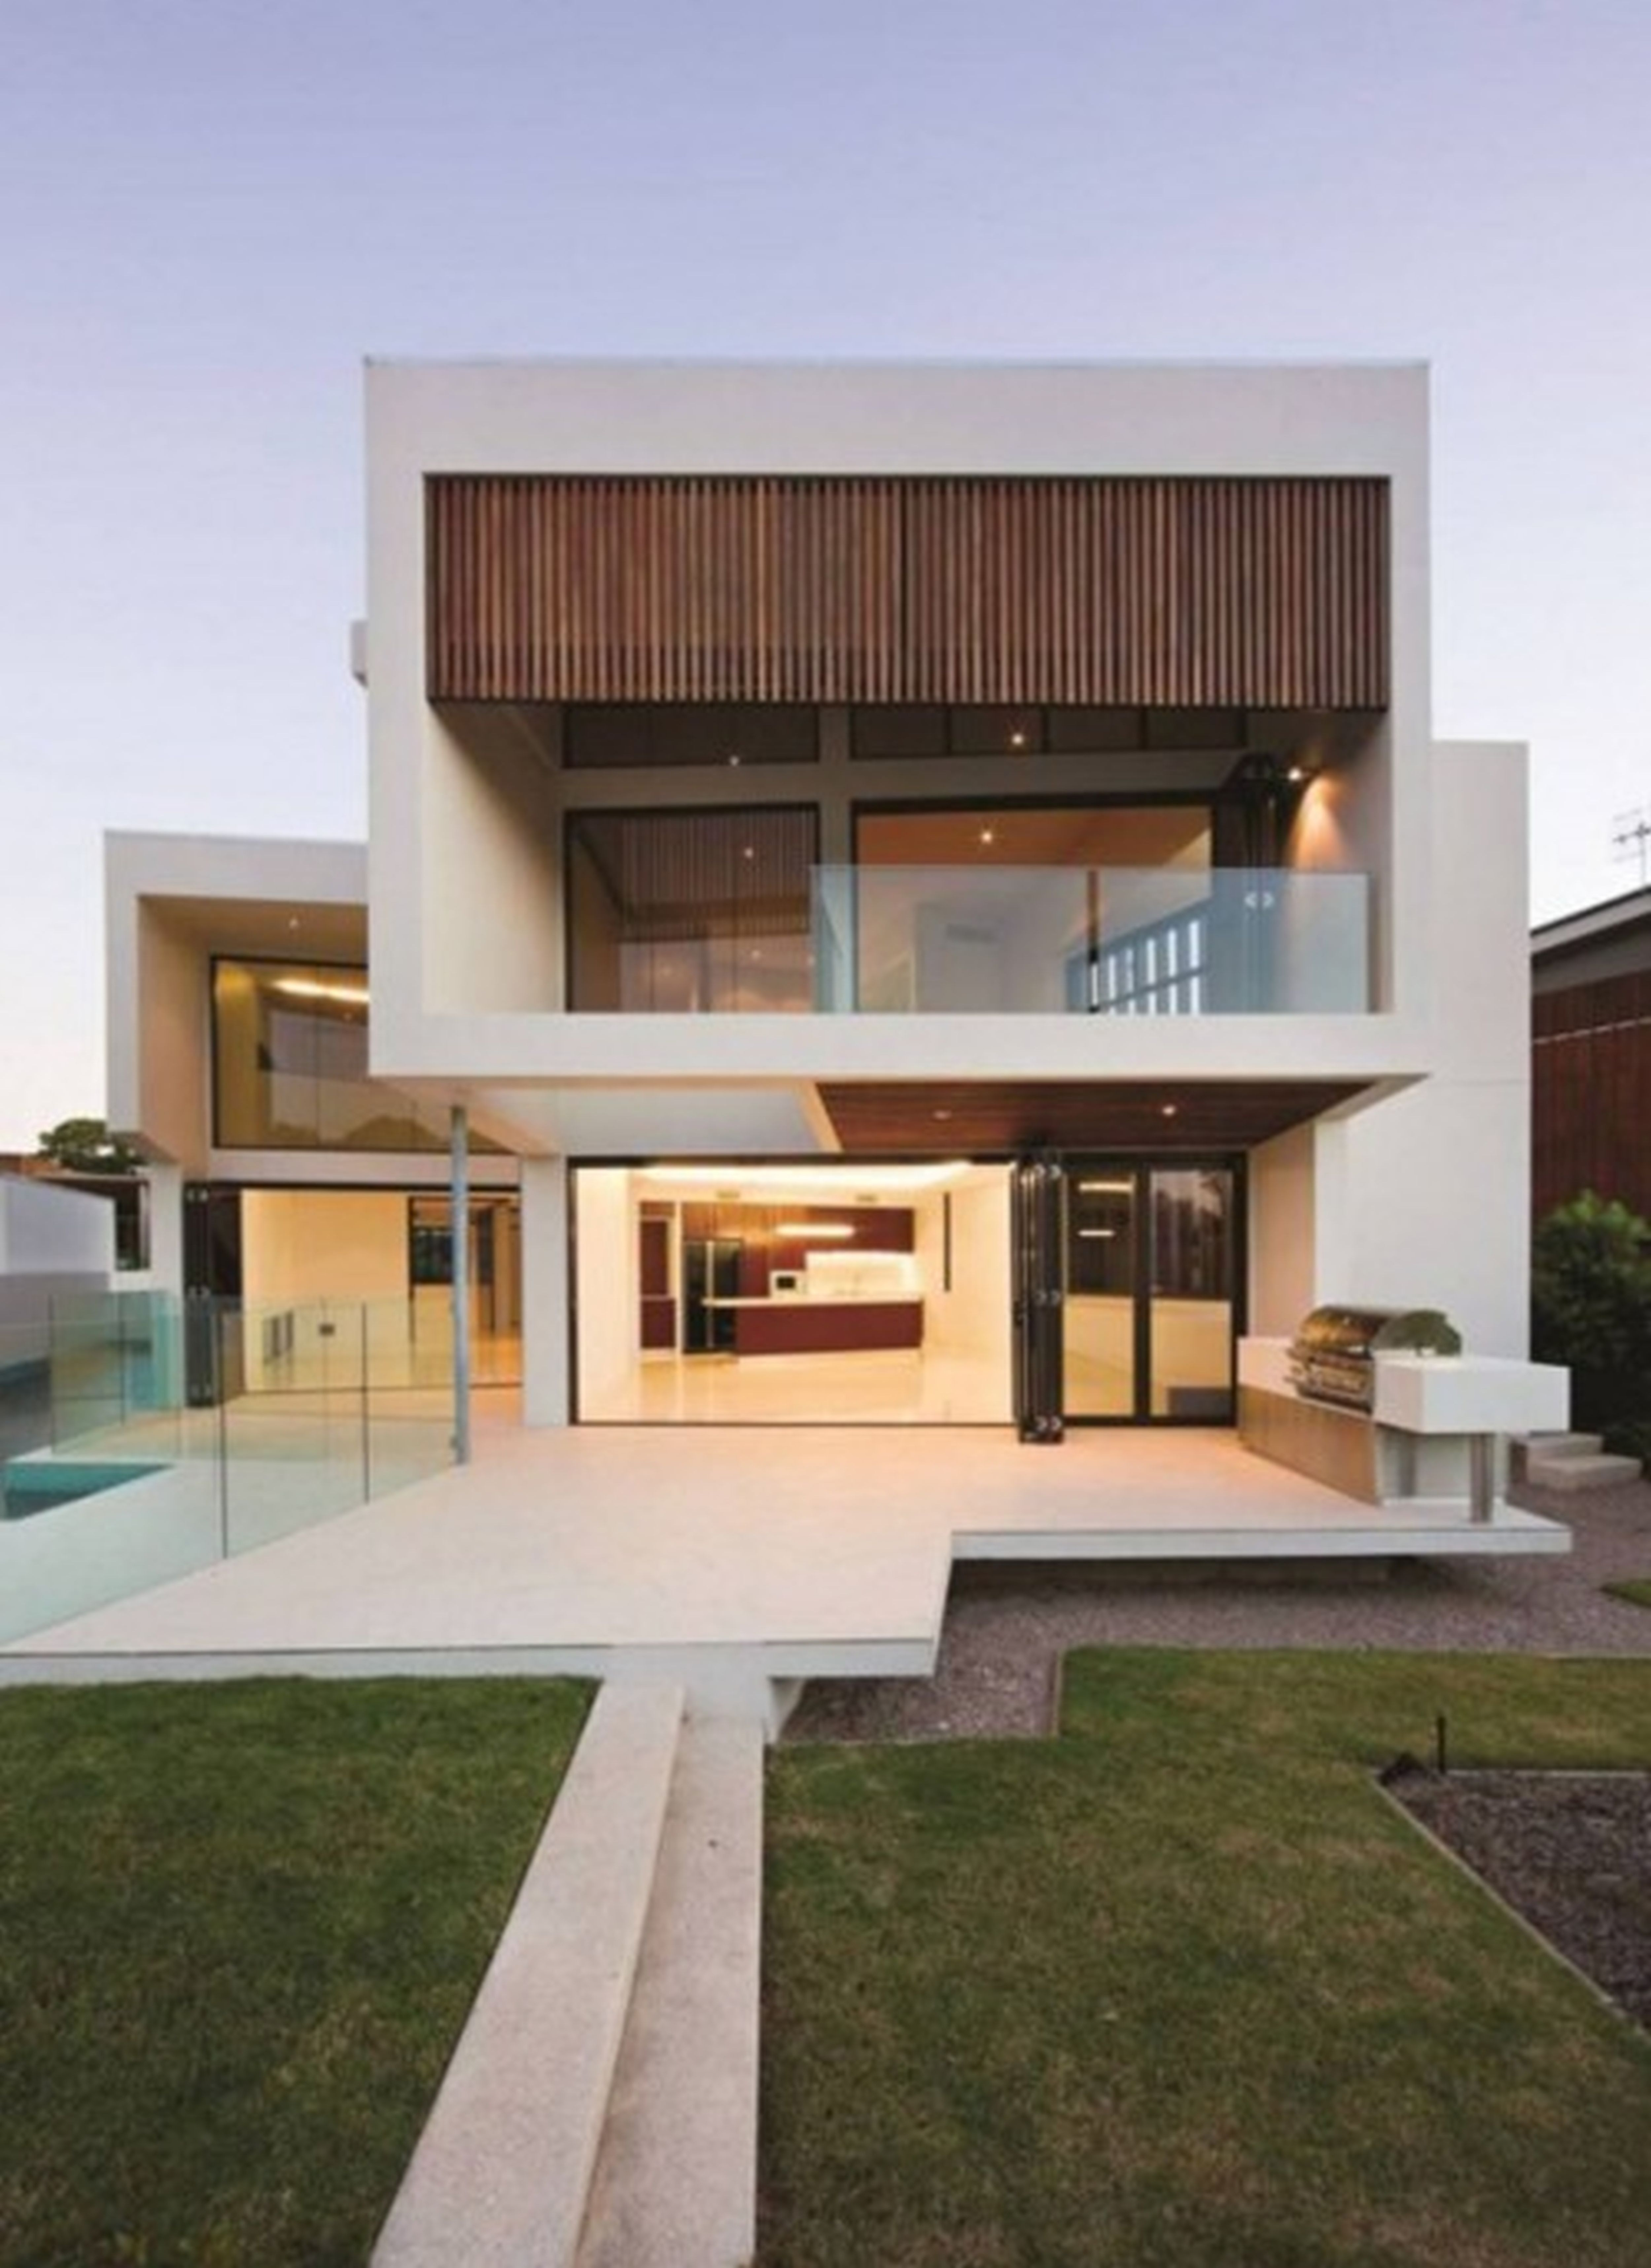 Best House Designs In the World Luxury Contemporary House Designs Inspirations Including Cool